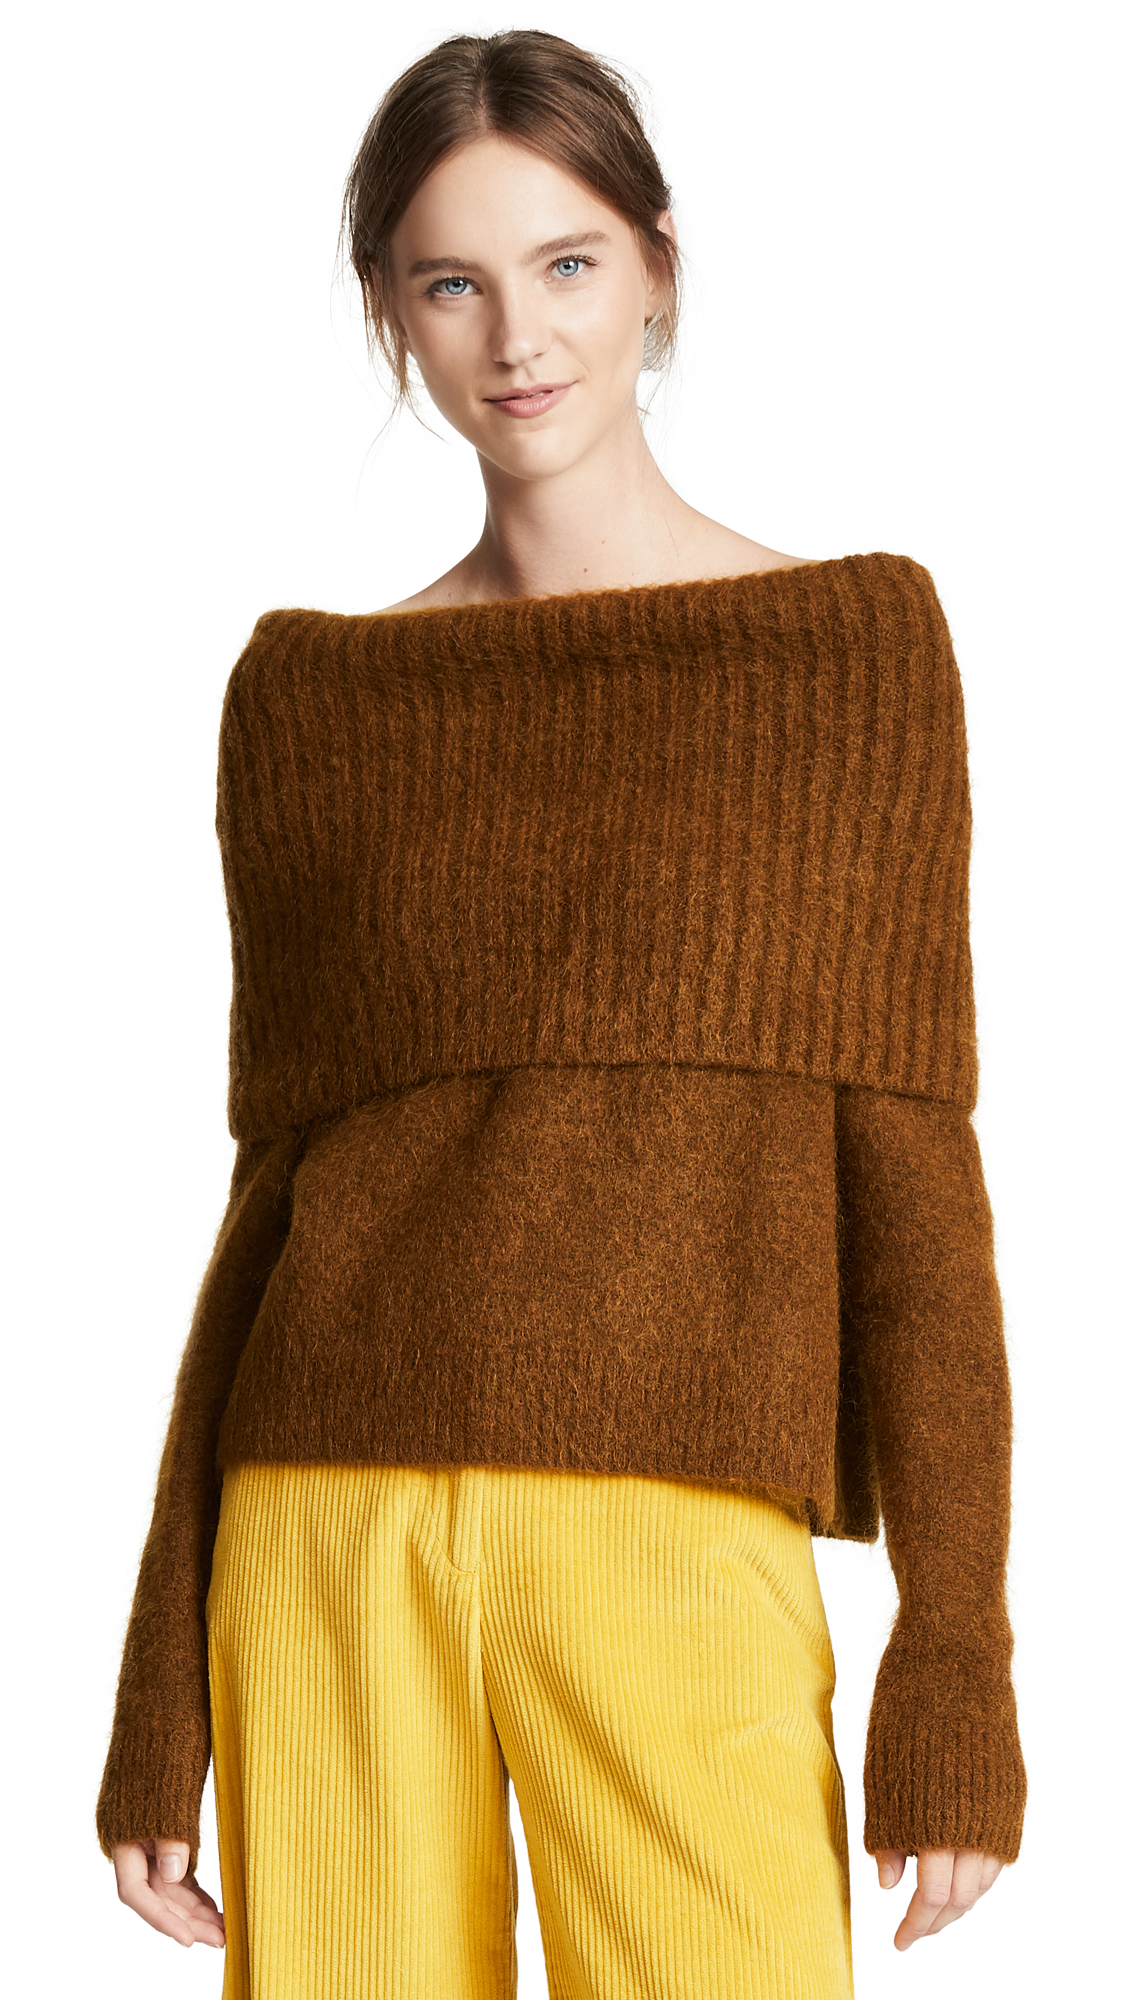 Acne Studio Cropped Sweater in Cognac Brow